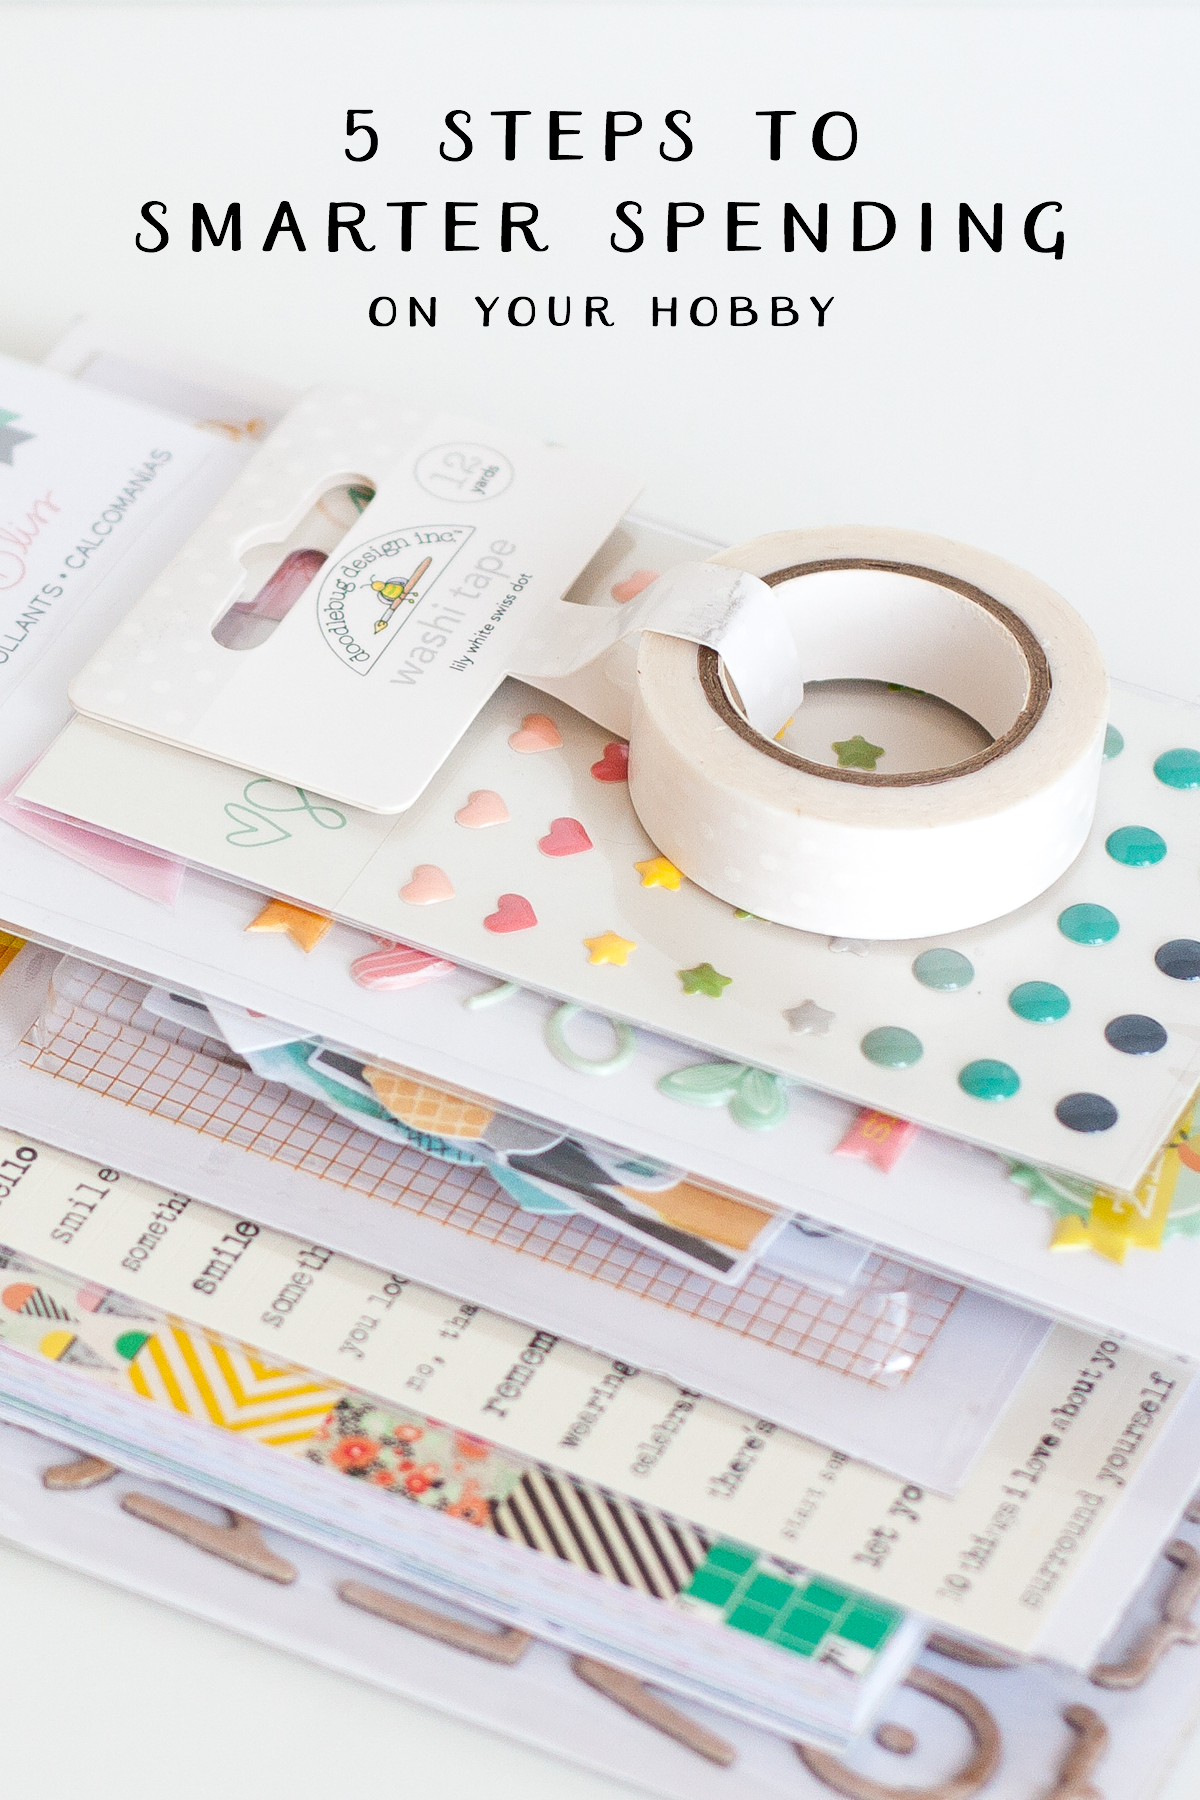 5 Steps to Smarter, More Intentional Spending on Your Hobby